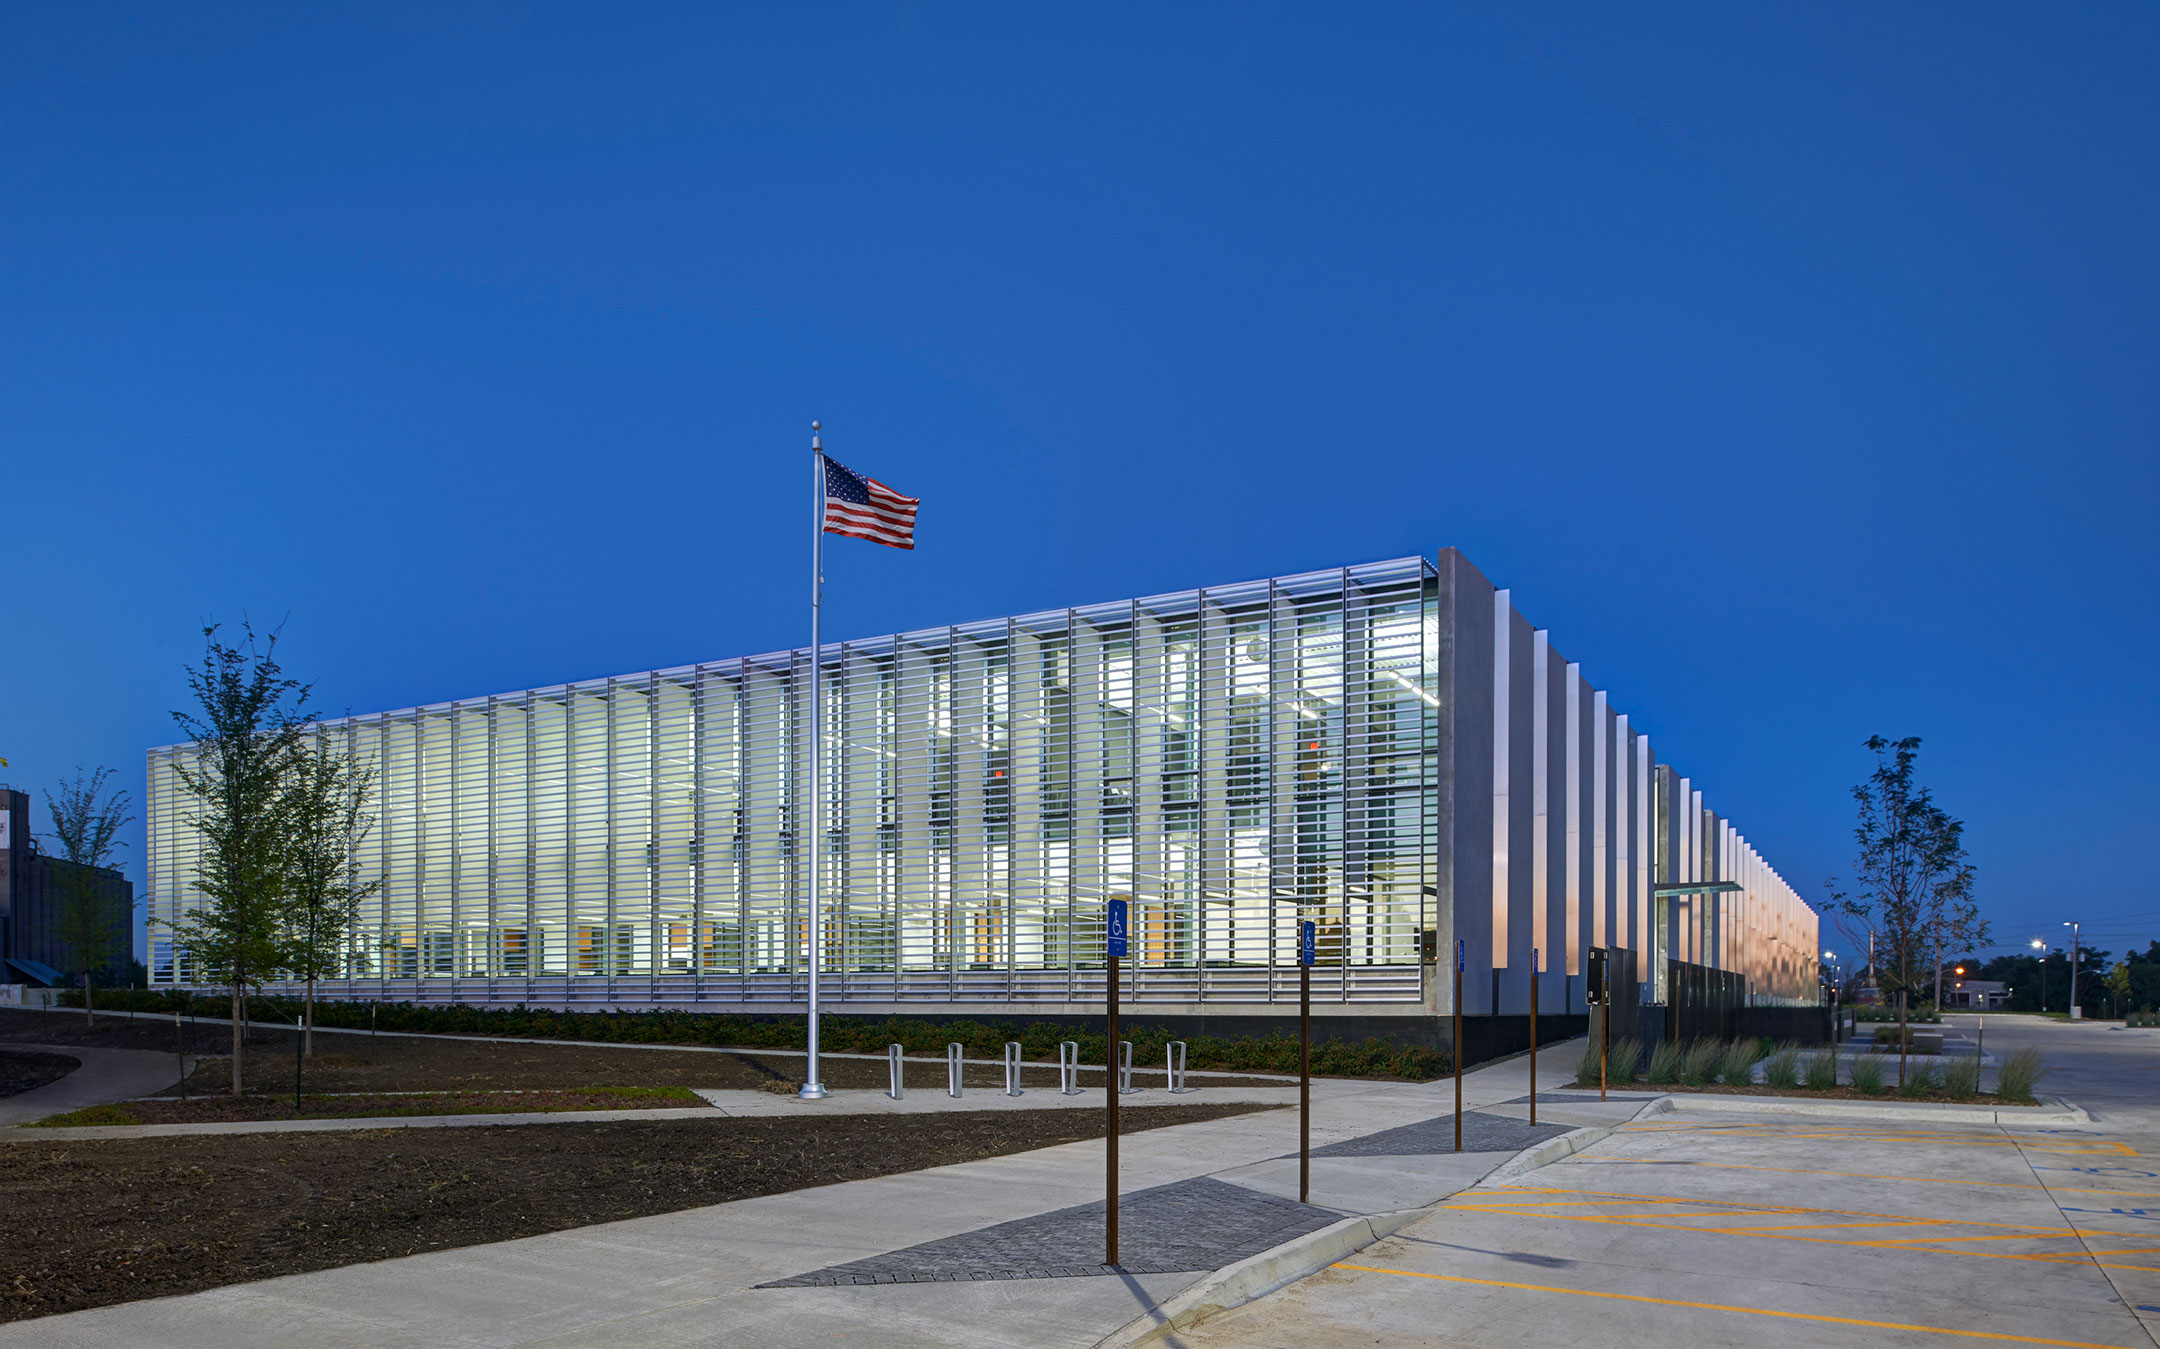 DES MOINES MUNICIPAL SERVICES CENTER BUILT